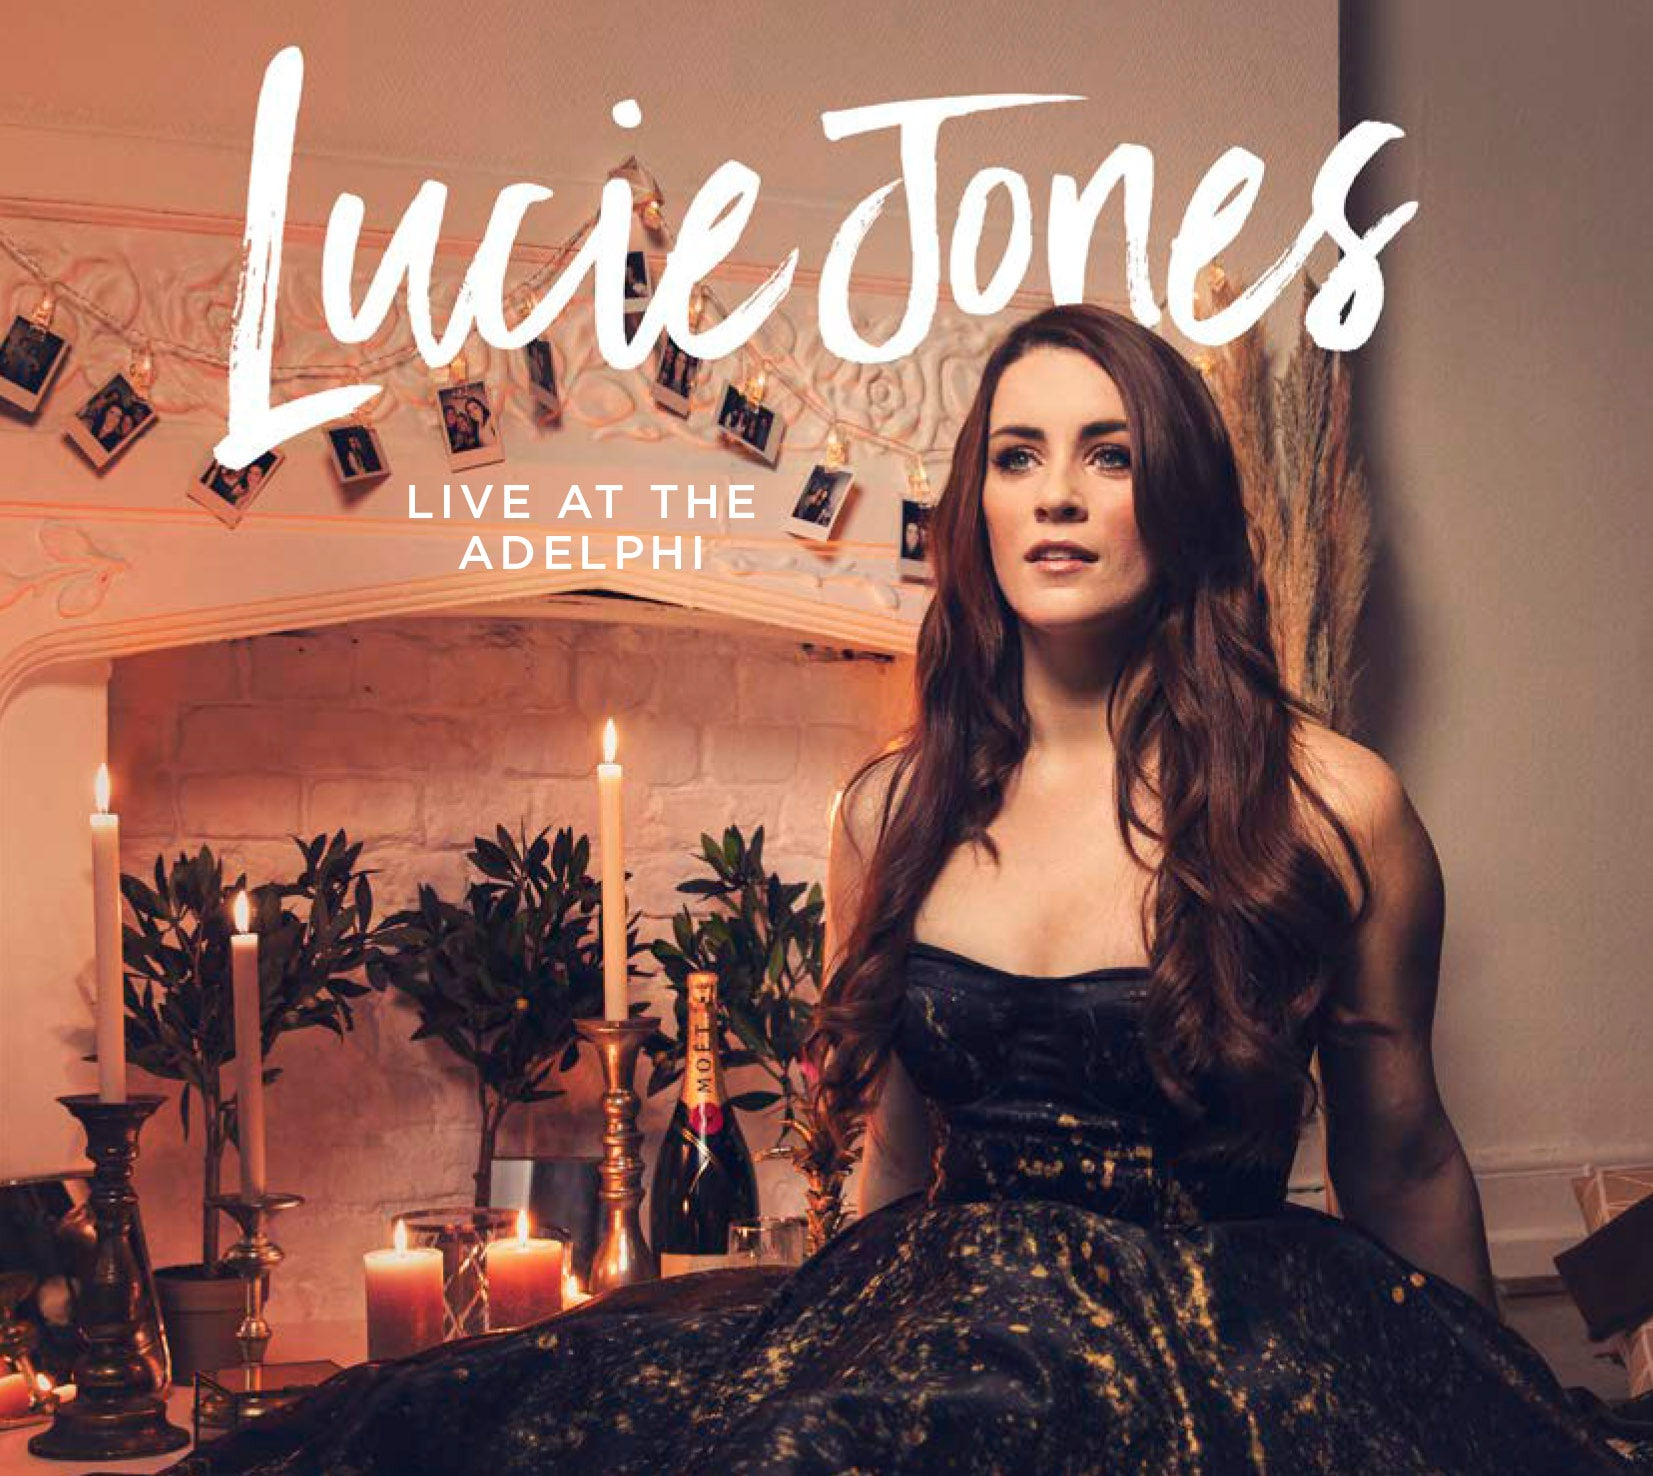 Lucie Jones - Live at the Adelphi - Original Concert Programme.